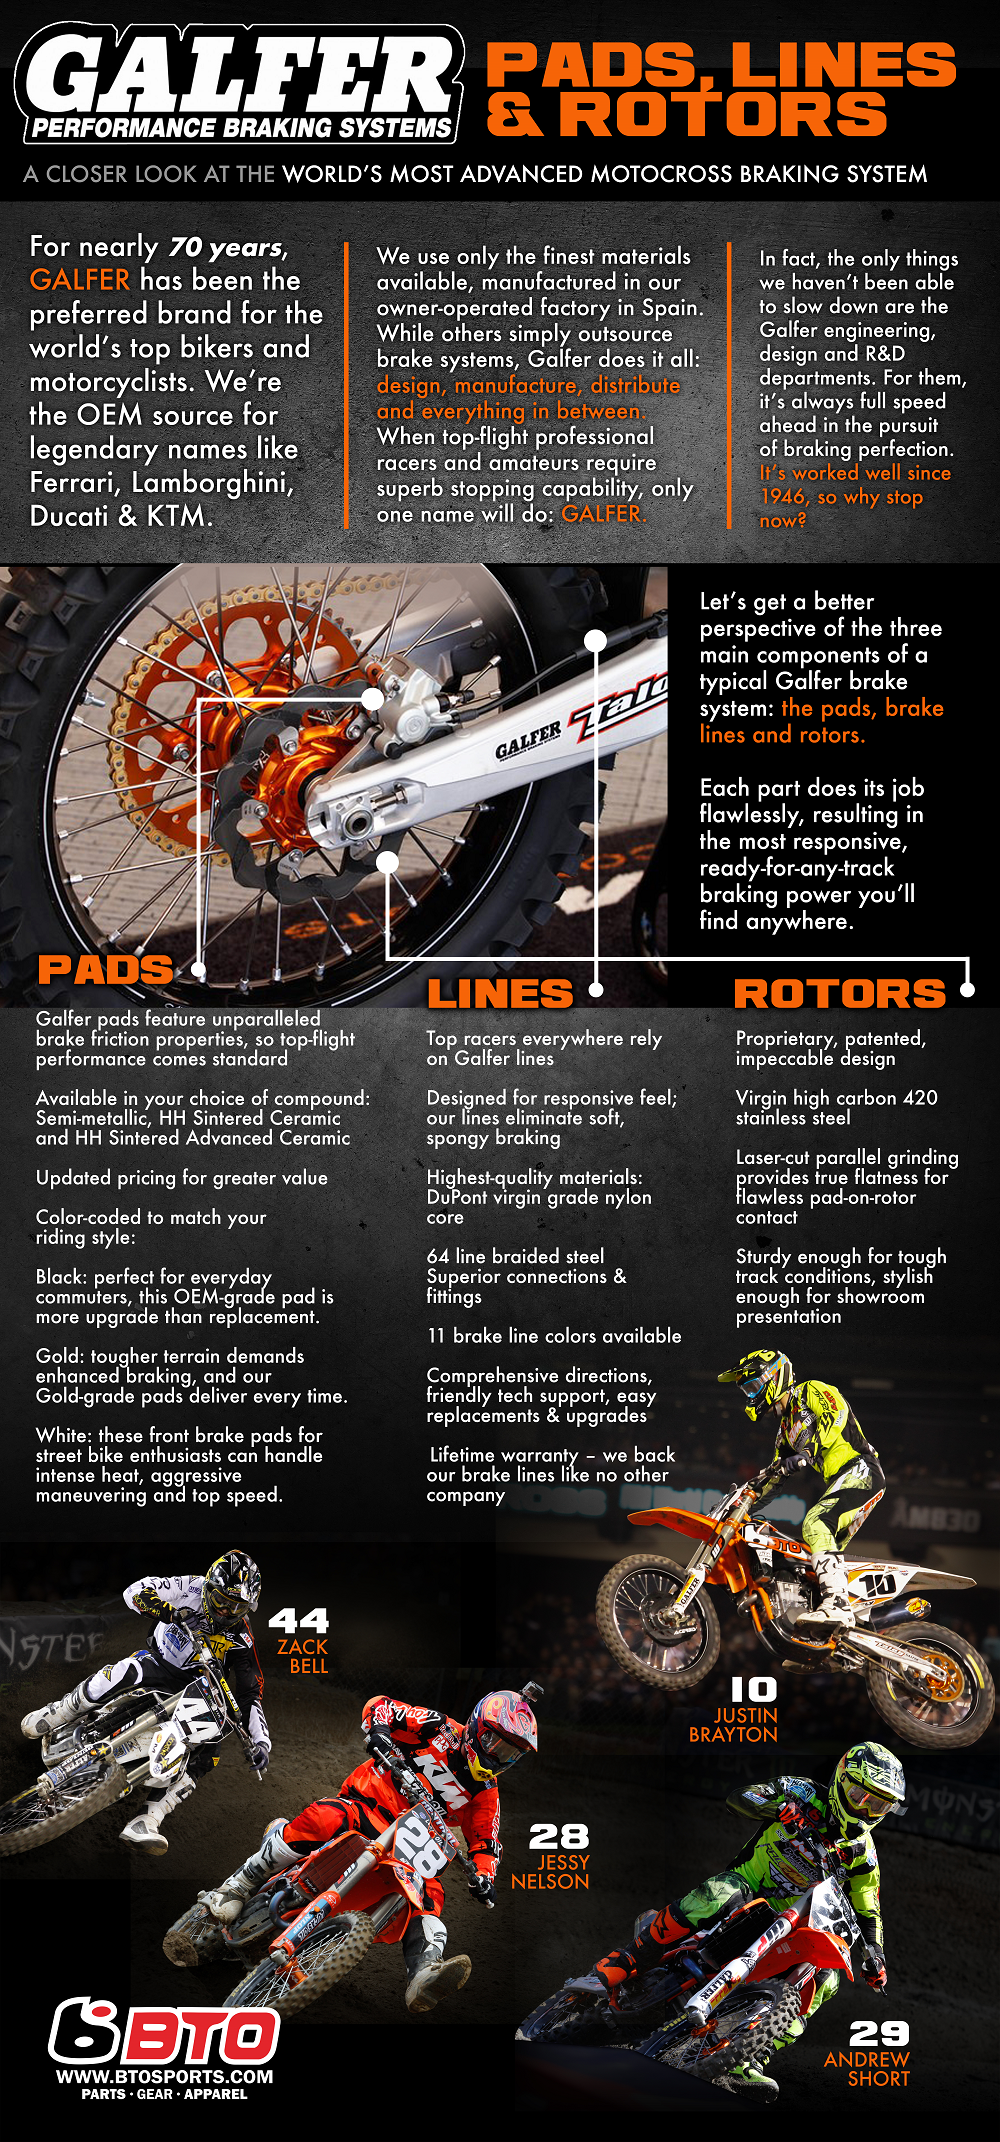 Galfer Brake Pads Lines And Rotors Infographic Motocross Gear Dirtbikes Bto Sports